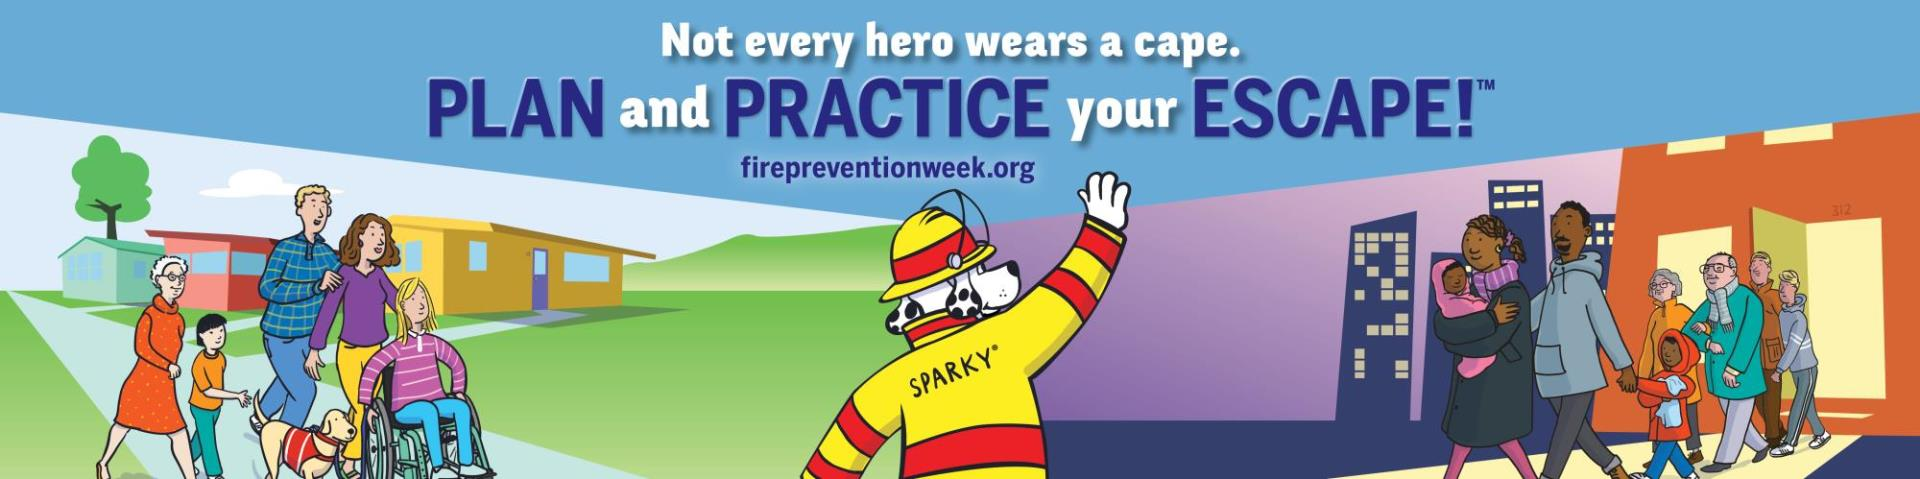 Not every hero wears a cape. Plan and practice your escape!